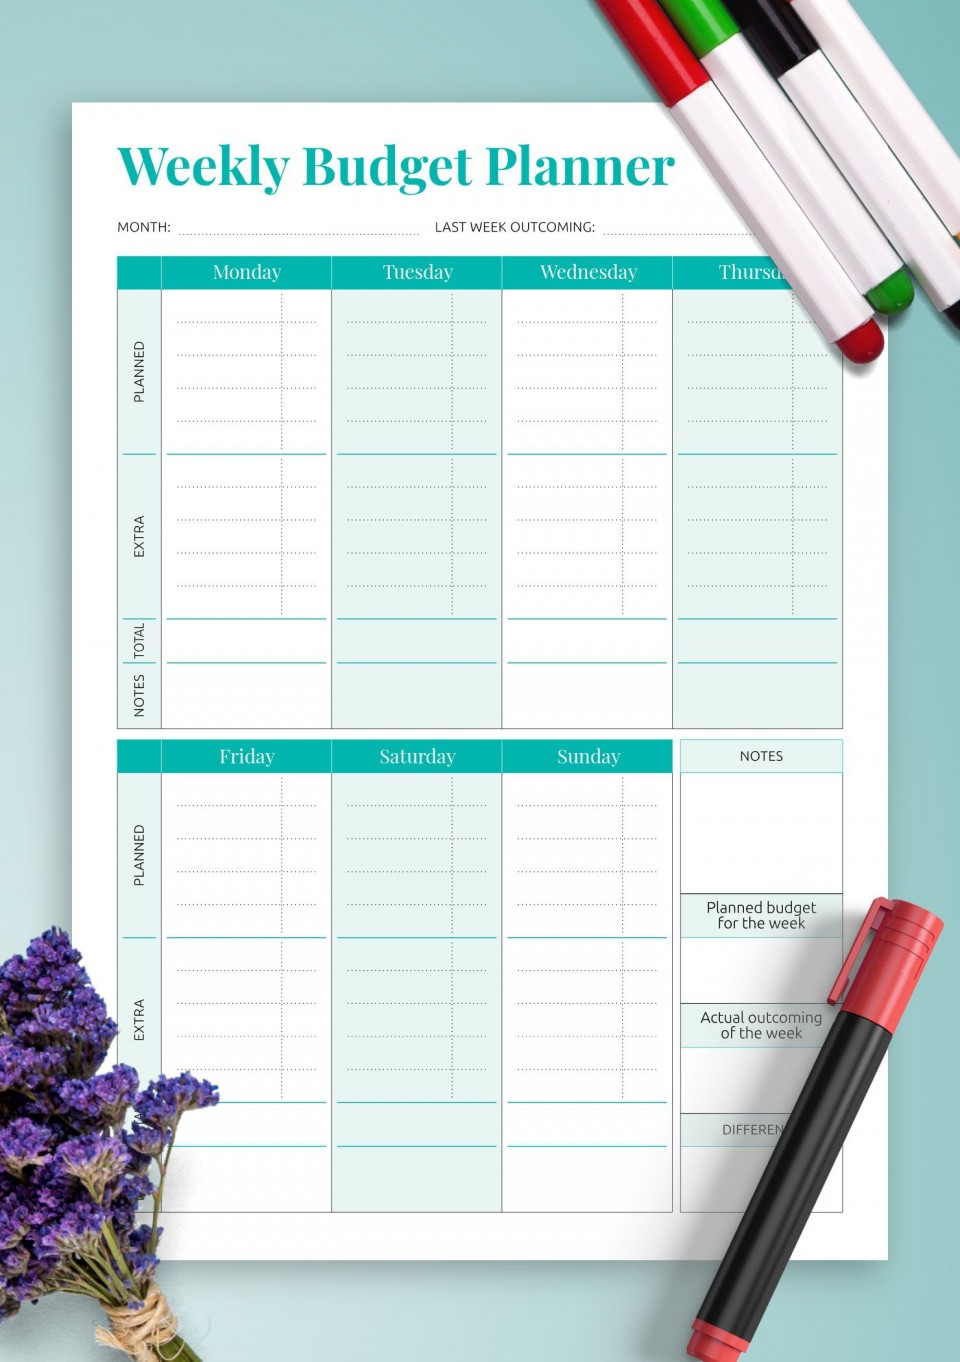 008 Surprising Simple Weekly Budget Template Picture  Planner Personal Printable960